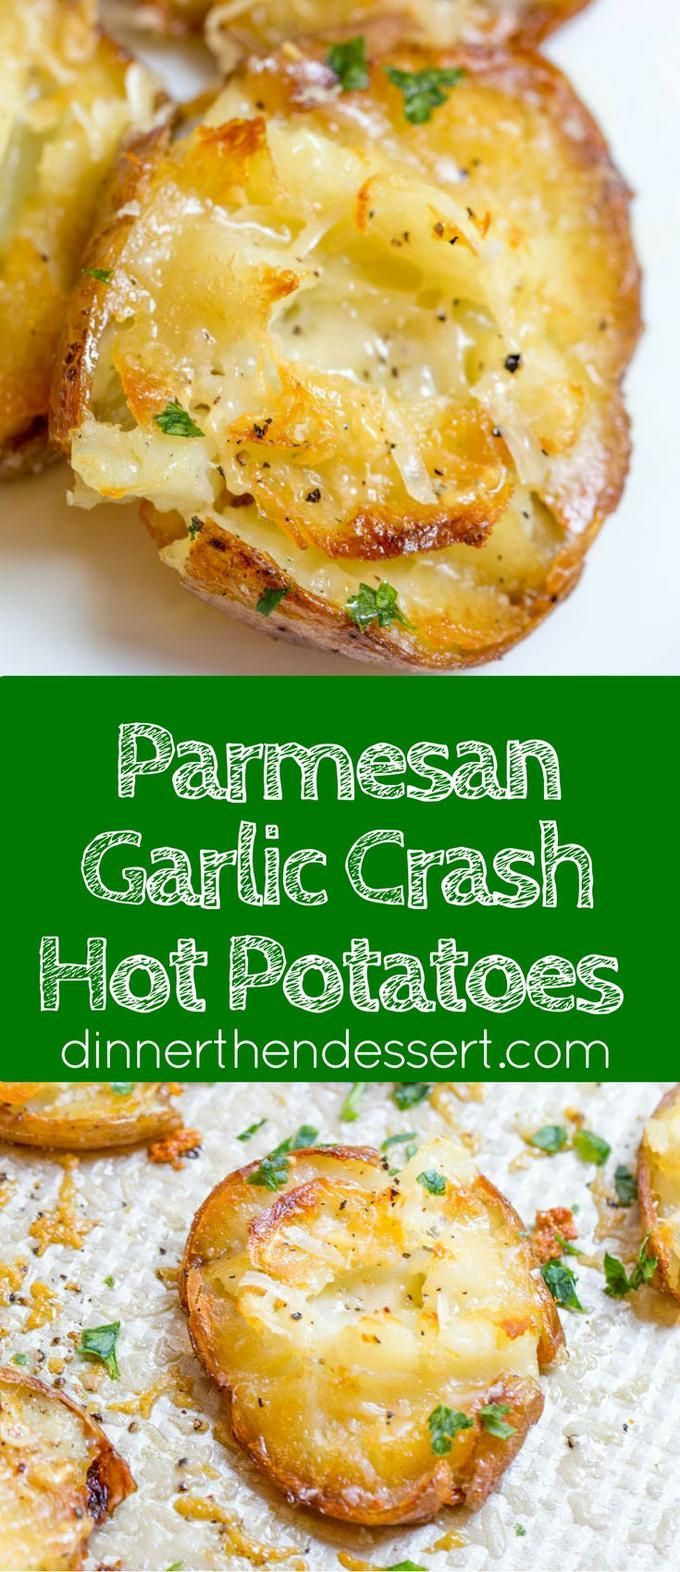 Parmesan Garlic Crash Hot Potatoes are crispy, creamy, cheesy and garlicky.